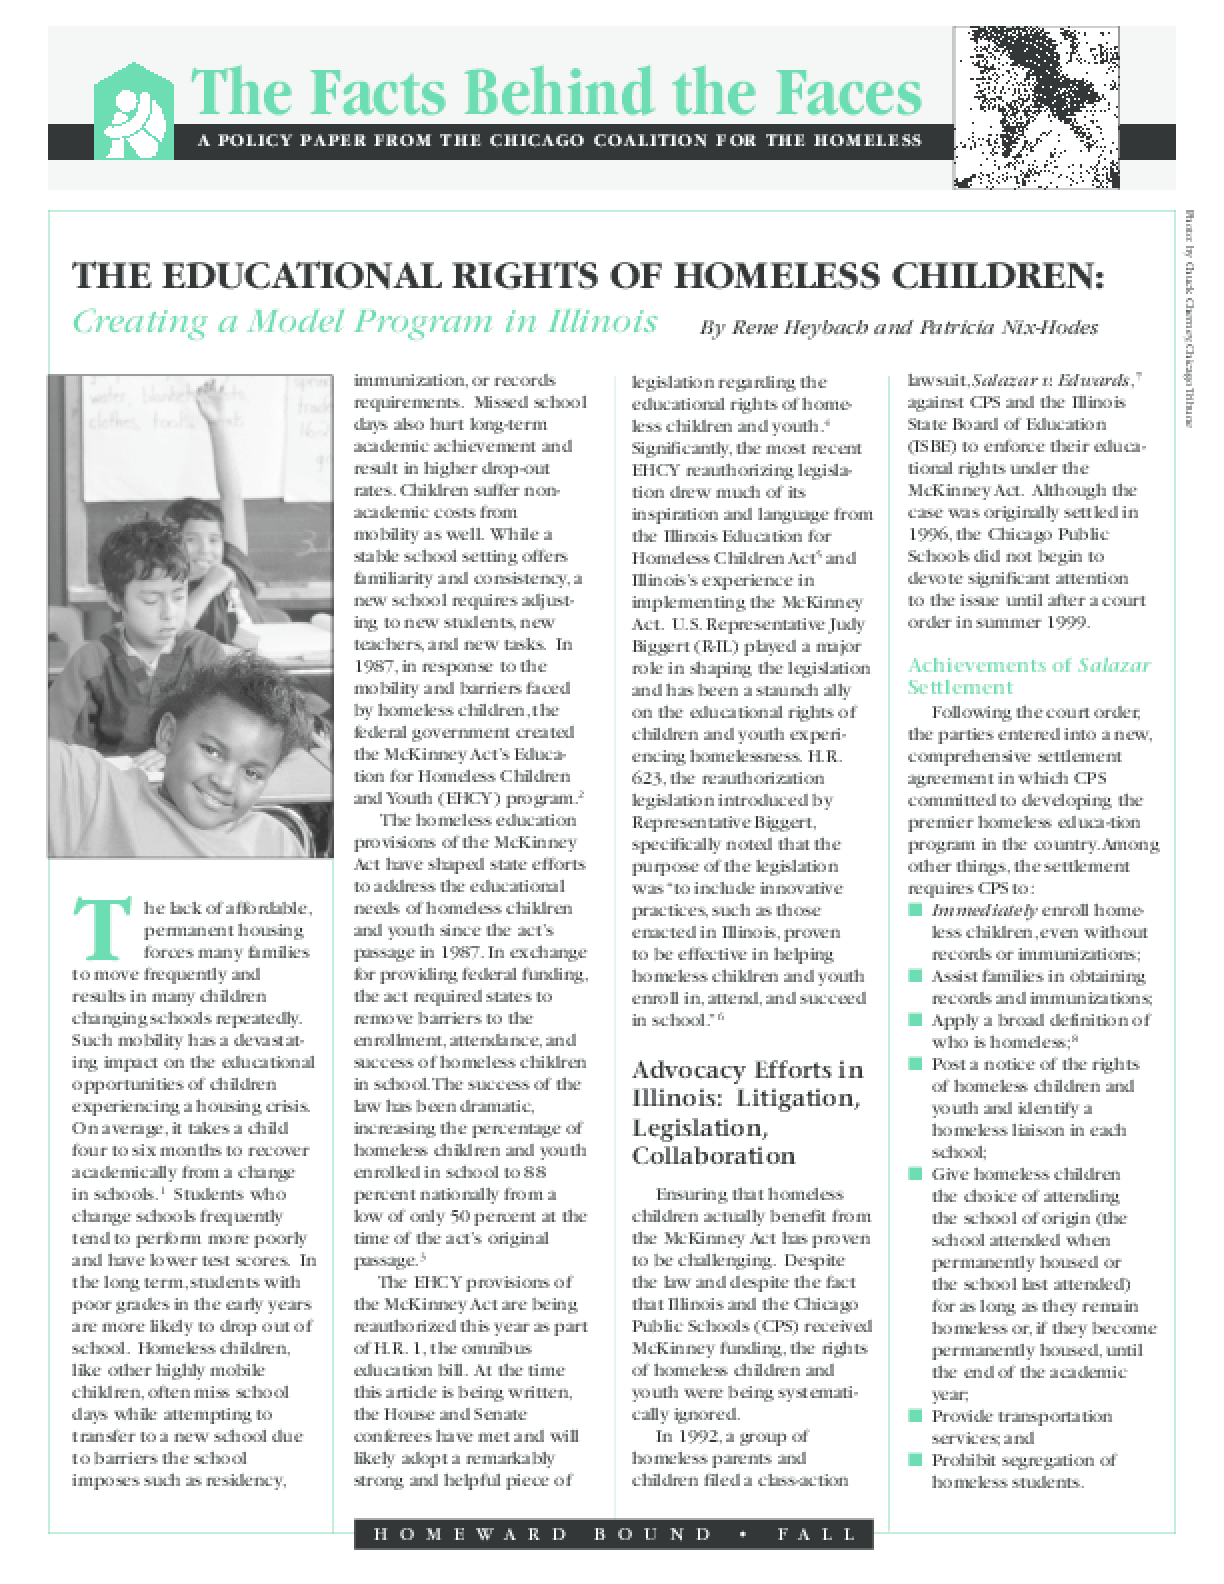 Educational Rights of Homeless Children: Creating a Model Program in Illinois